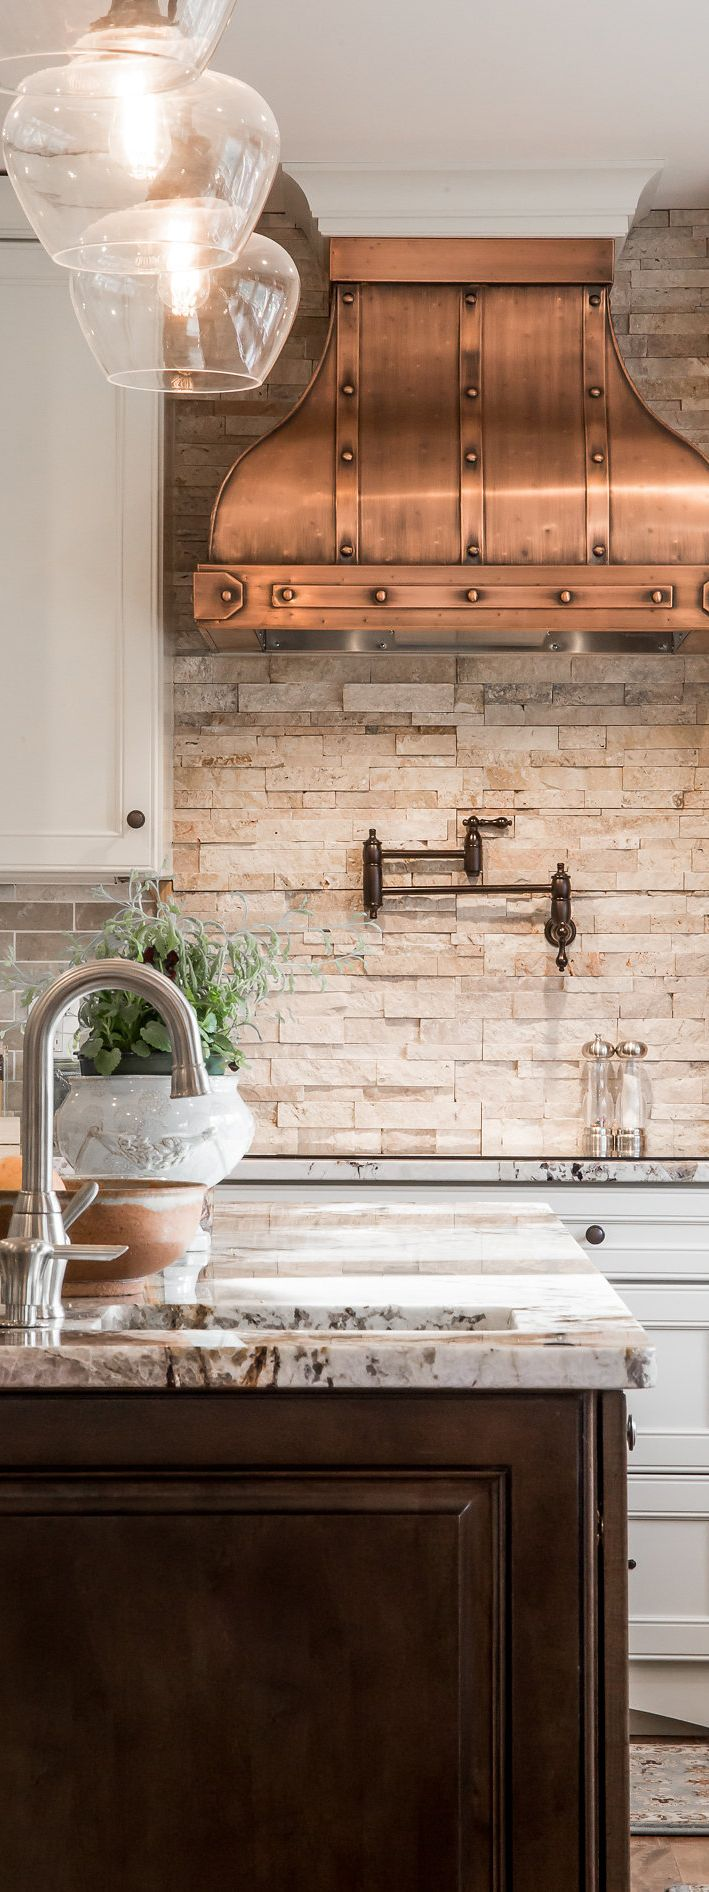 Traditional kitchen with copper accents designed by Kitchen Style.